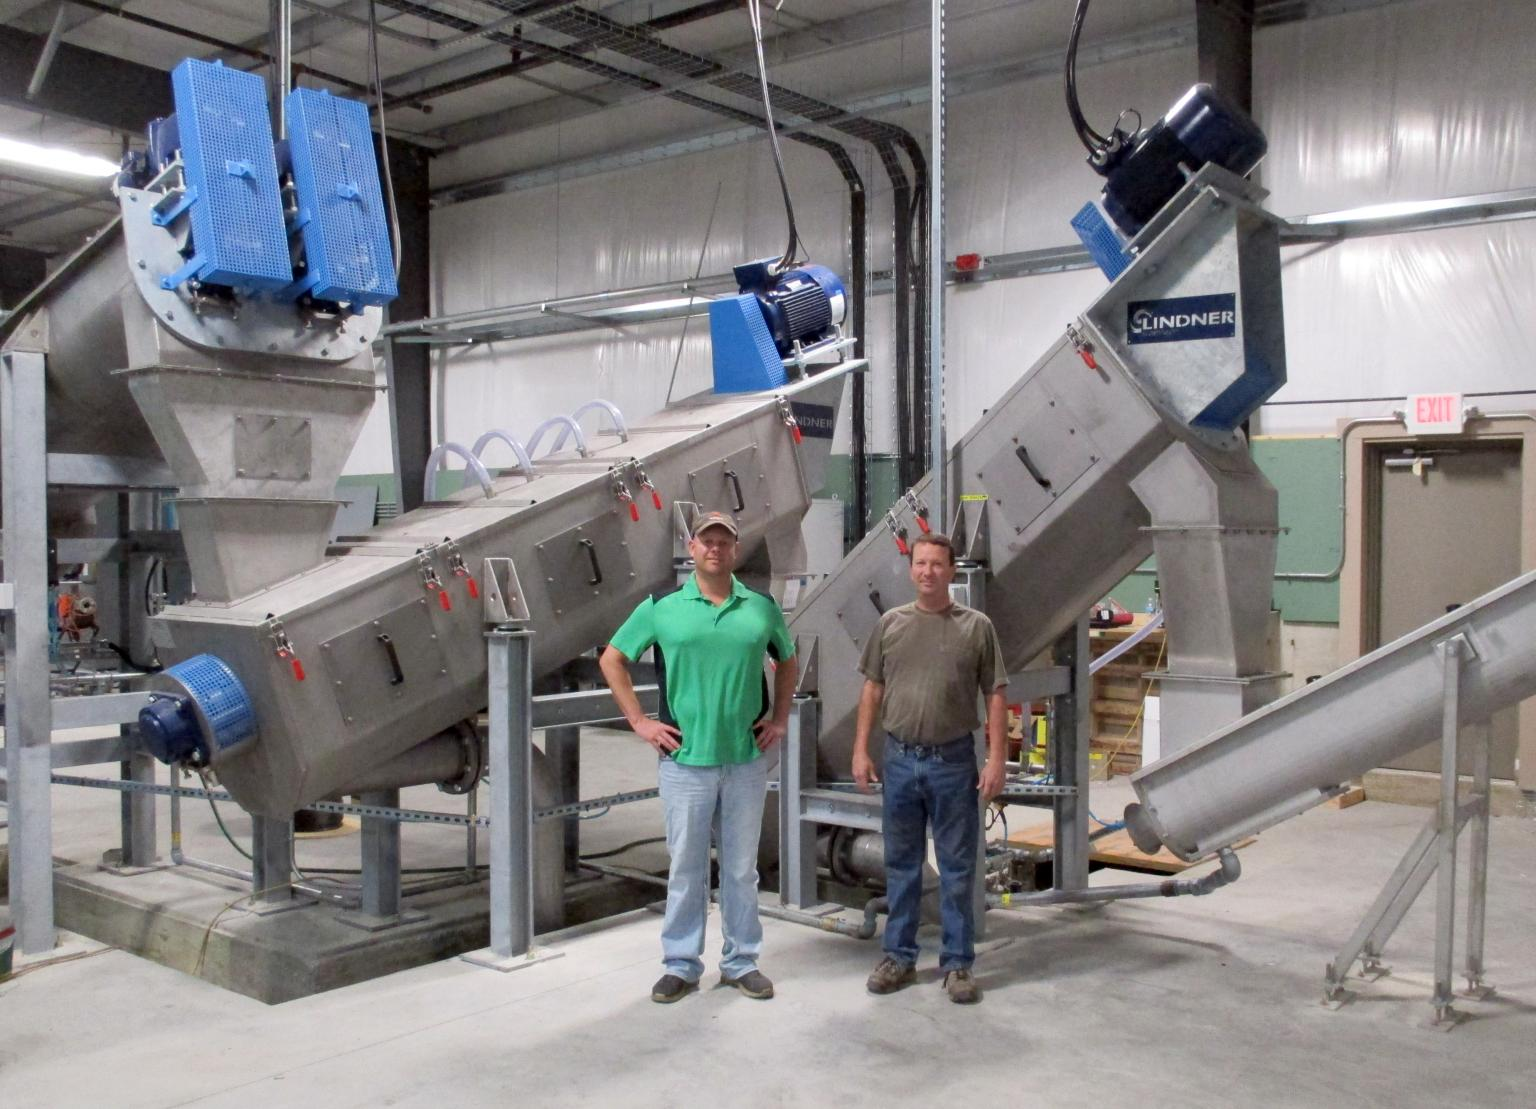 Cedar Poly's managing directors Scott (left) and Jeremy Rogers (right) have selected Lindner washTech's modular washing system for their state-of-the-art plastic recycling plant in Tipton, IA/USA